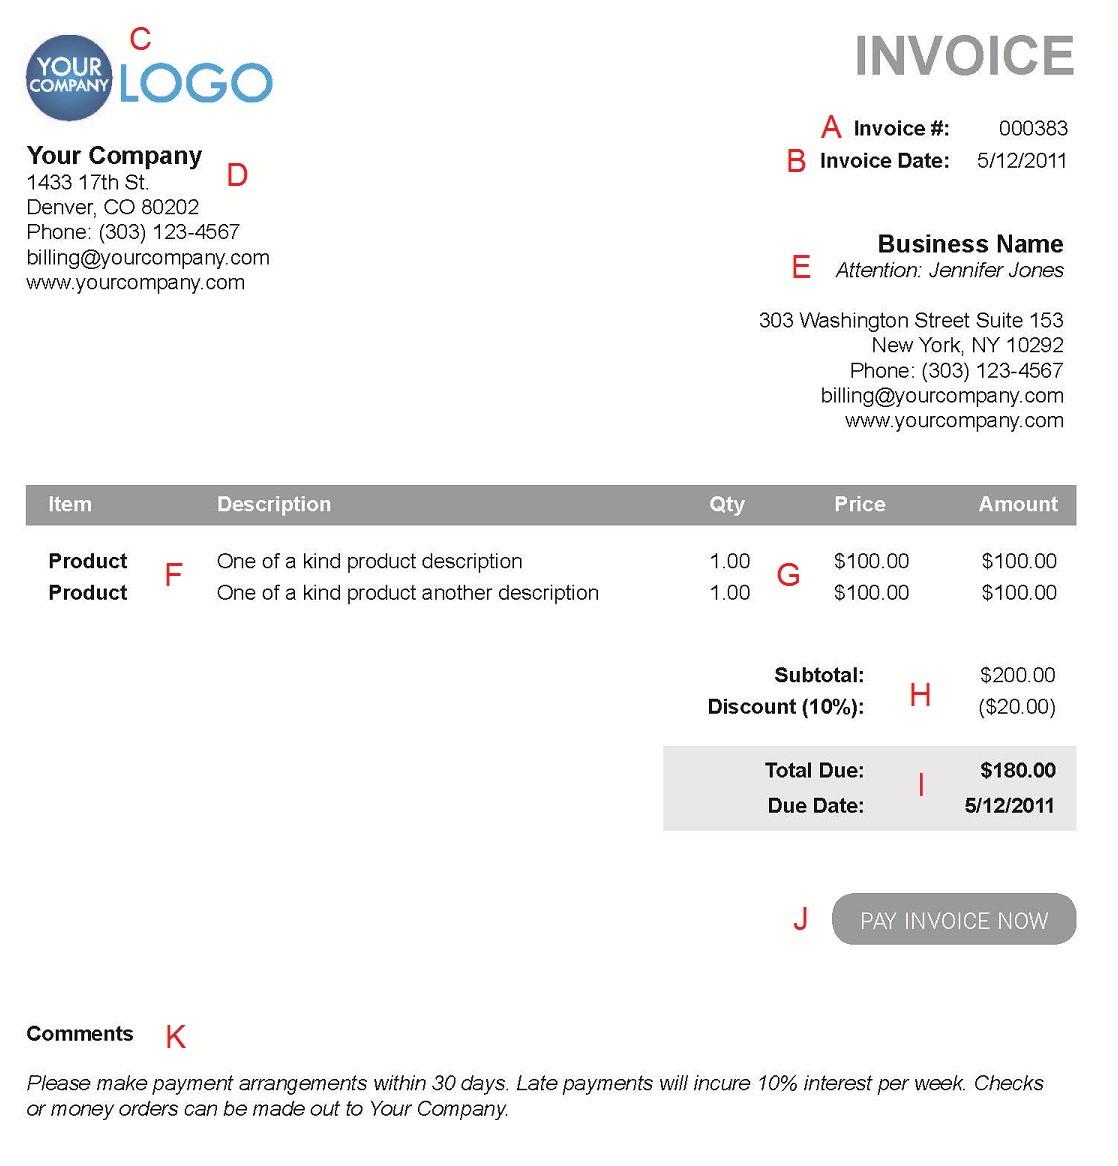 Ultrablogus  Unique The  Different Sections Of An Electronic Payment Invoice With Excellent A  With Alluring Simple Invoice Program Also Apps For Invoices In Addition Sending Invoice And Auto Repair Invoicing Software As Well As Google Doc Template Invoice Additionally Official Invoice Template From Paysimplecom With Ultrablogus  Excellent The  Different Sections Of An Electronic Payment Invoice With Alluring A  And Unique Simple Invoice Program Also Apps For Invoices In Addition Sending Invoice From Paysimplecom